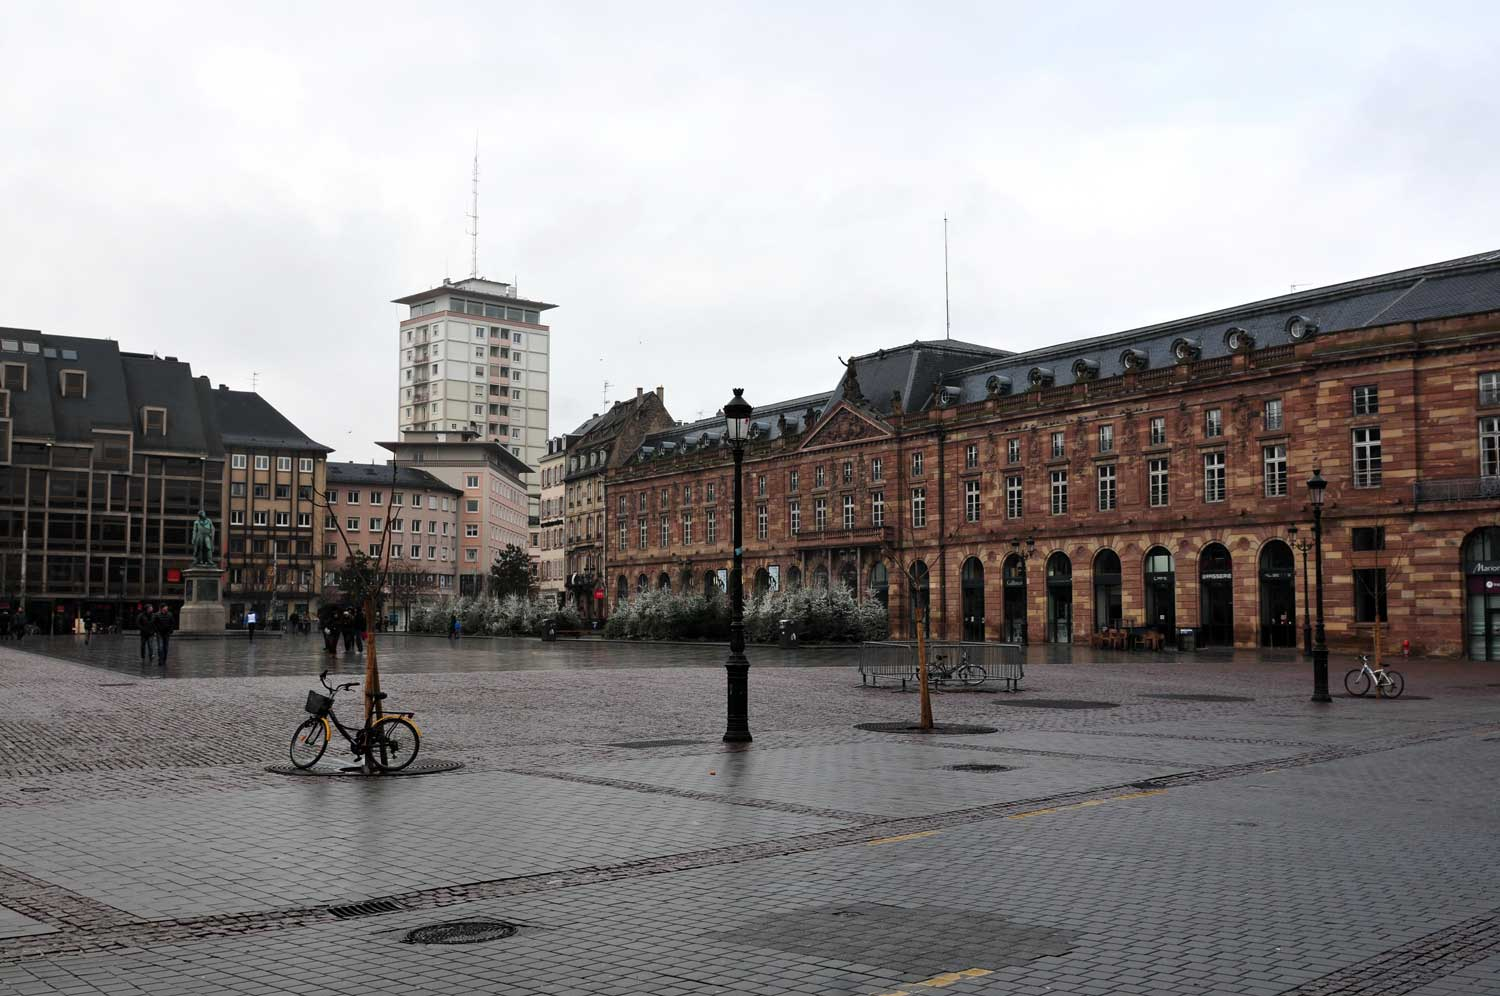 Kléber square and Sorg Tower